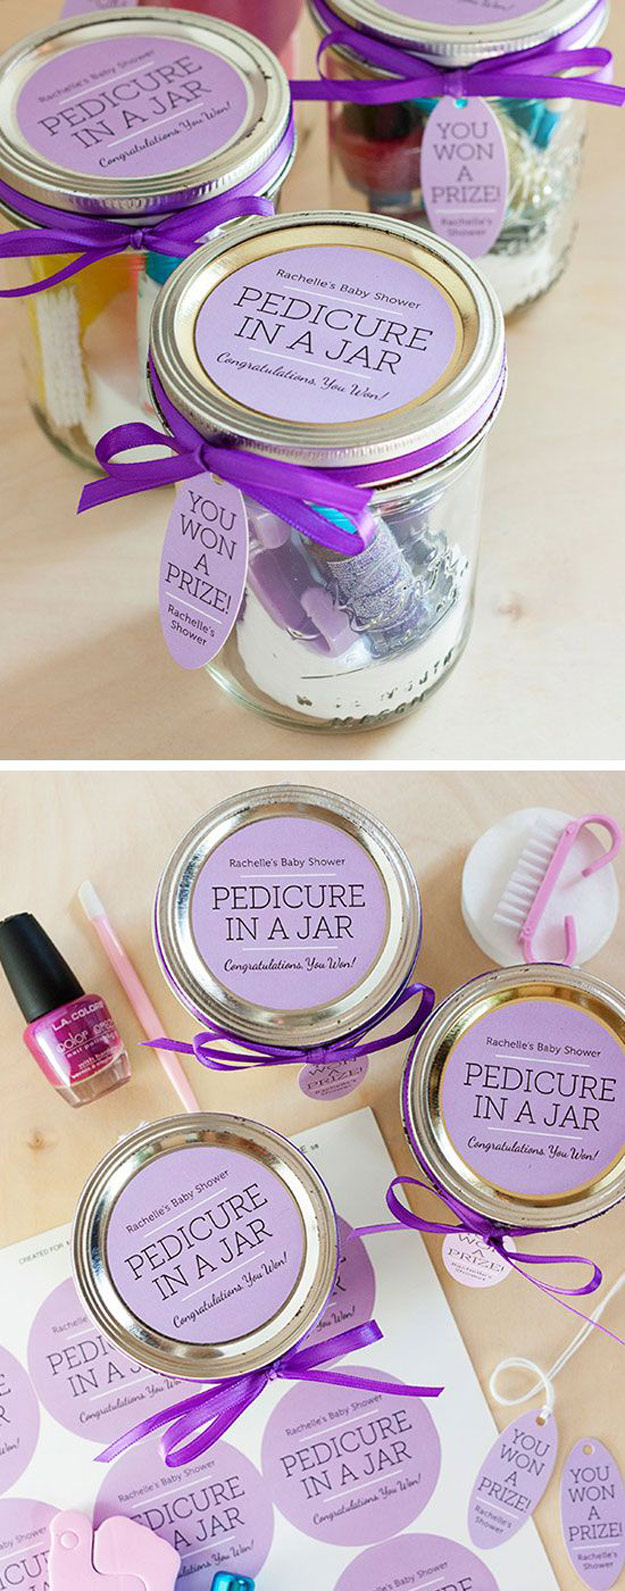 Homemade DIY Gifts in A Jar | Best Mason Jar Cookie Mixes and Recipes, Alcohol Mixers | Fun Gift Ideas for Men, Women, Teens, Kids, Teacher, Mom. Christmas, Holiday, Birthday and Easy Last Minute Gifts | DIY Gift Pedicure in a Jar #diy